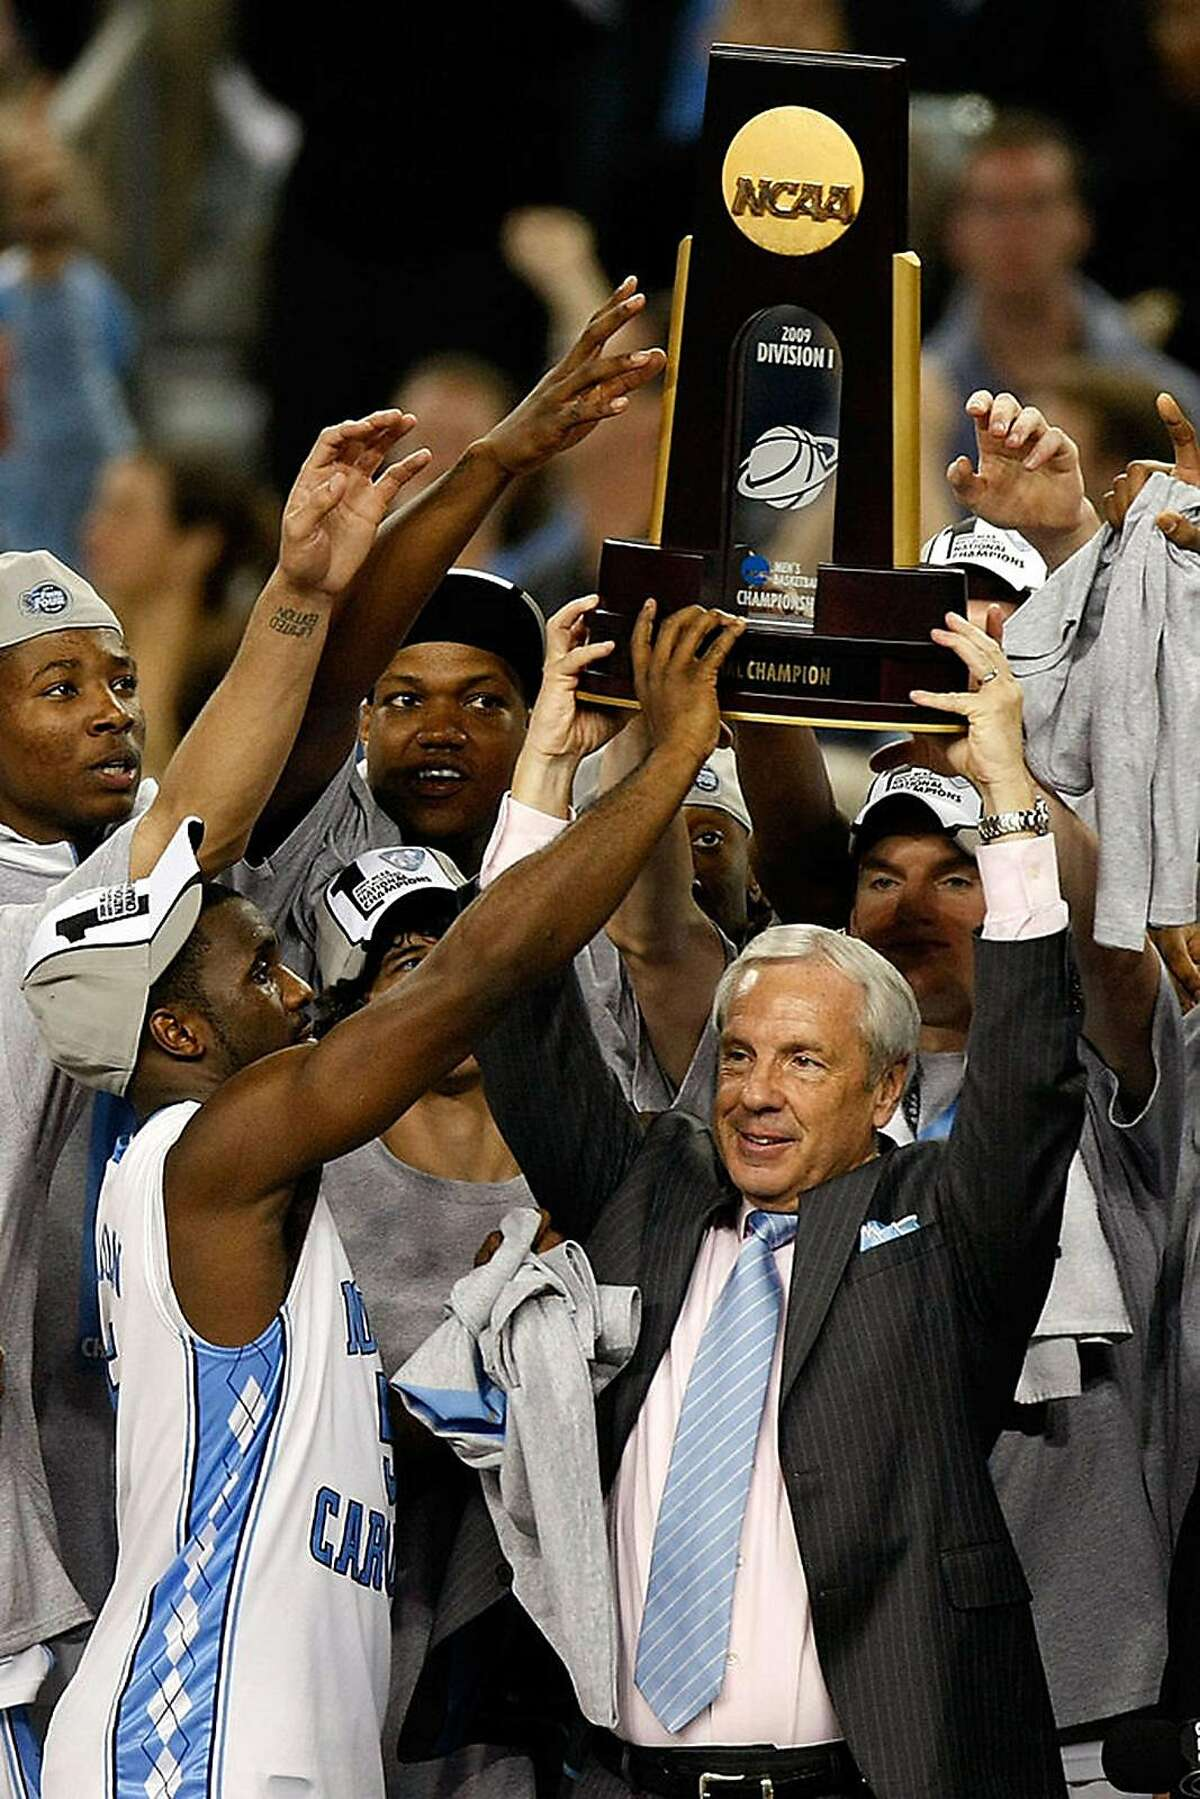 Head coach Roy Williams of the North Carolina Tar Heels celebrates with the championship trophy after defeating the Michigan State Spartans 89-72 during the 2009 NCAA Division I Men's Basketball National Championship game at Ford Field on April 6, 2009 in Detroit, Michigan. (Photo by Gregory Shamus/Getty Images/TNS)